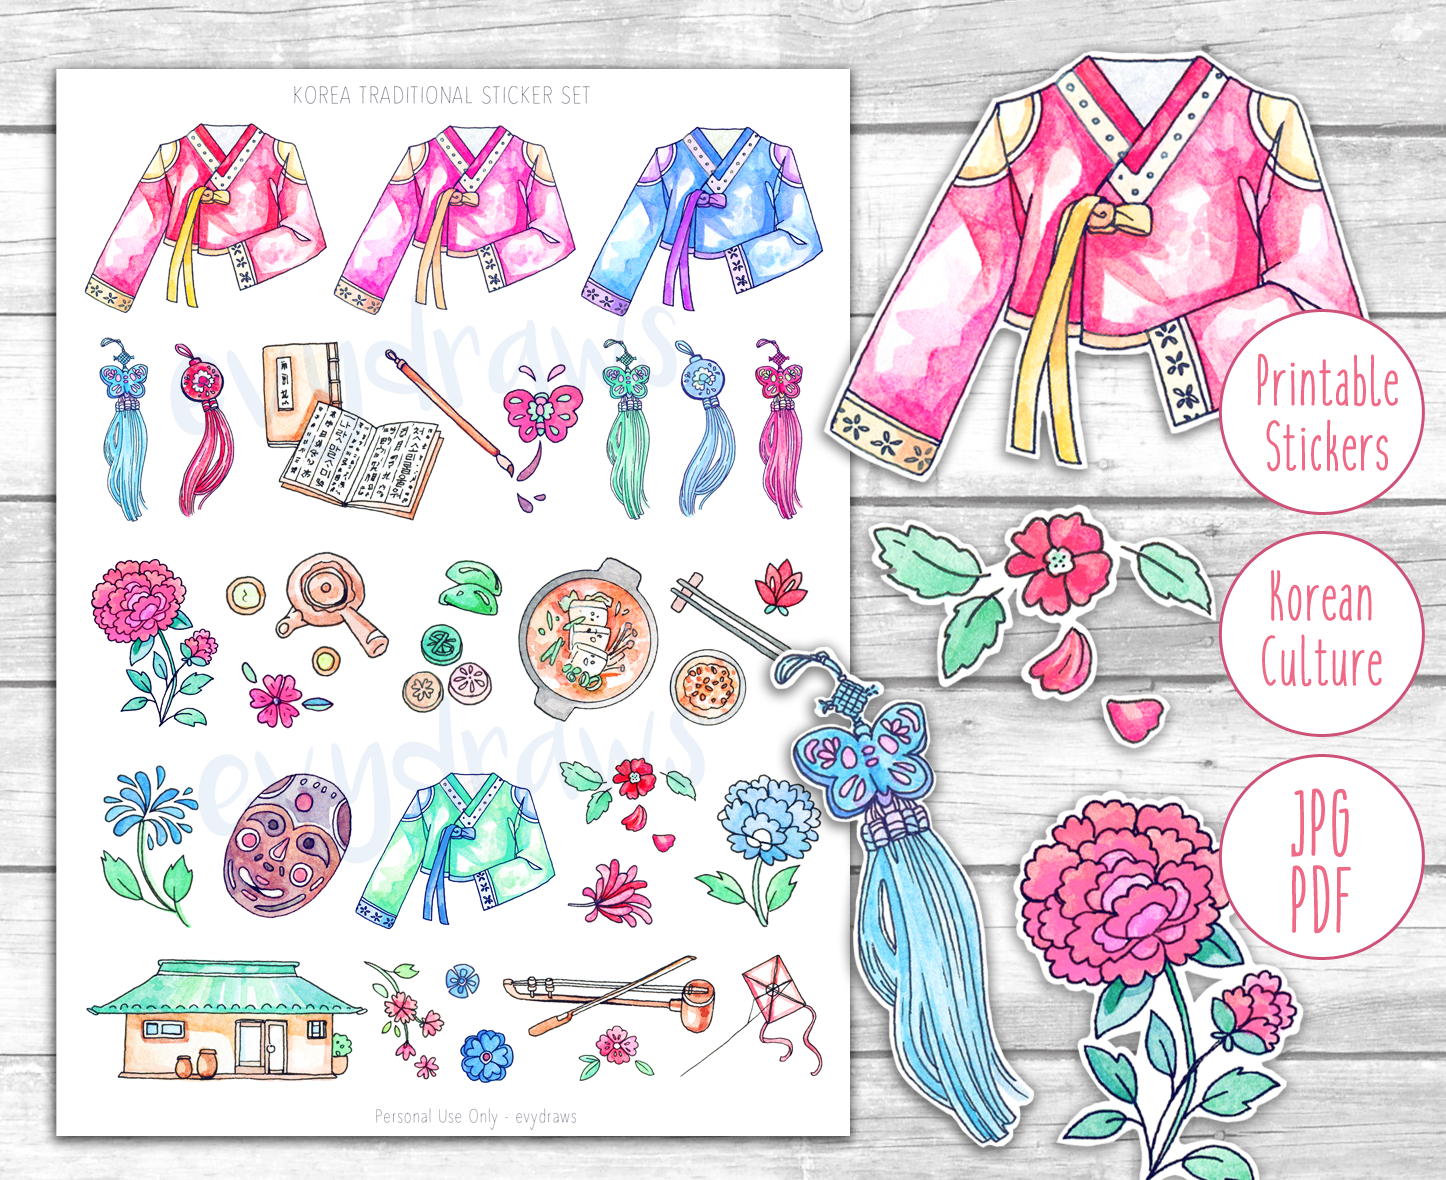 Traditional Korea: Travel Stickers Printable Korean culture illustrations - from Hanbok to embroidery, tea ceremony to traditional houses. These Korea stickers are perfect little decor elements for your travel diary, journal, or letters!